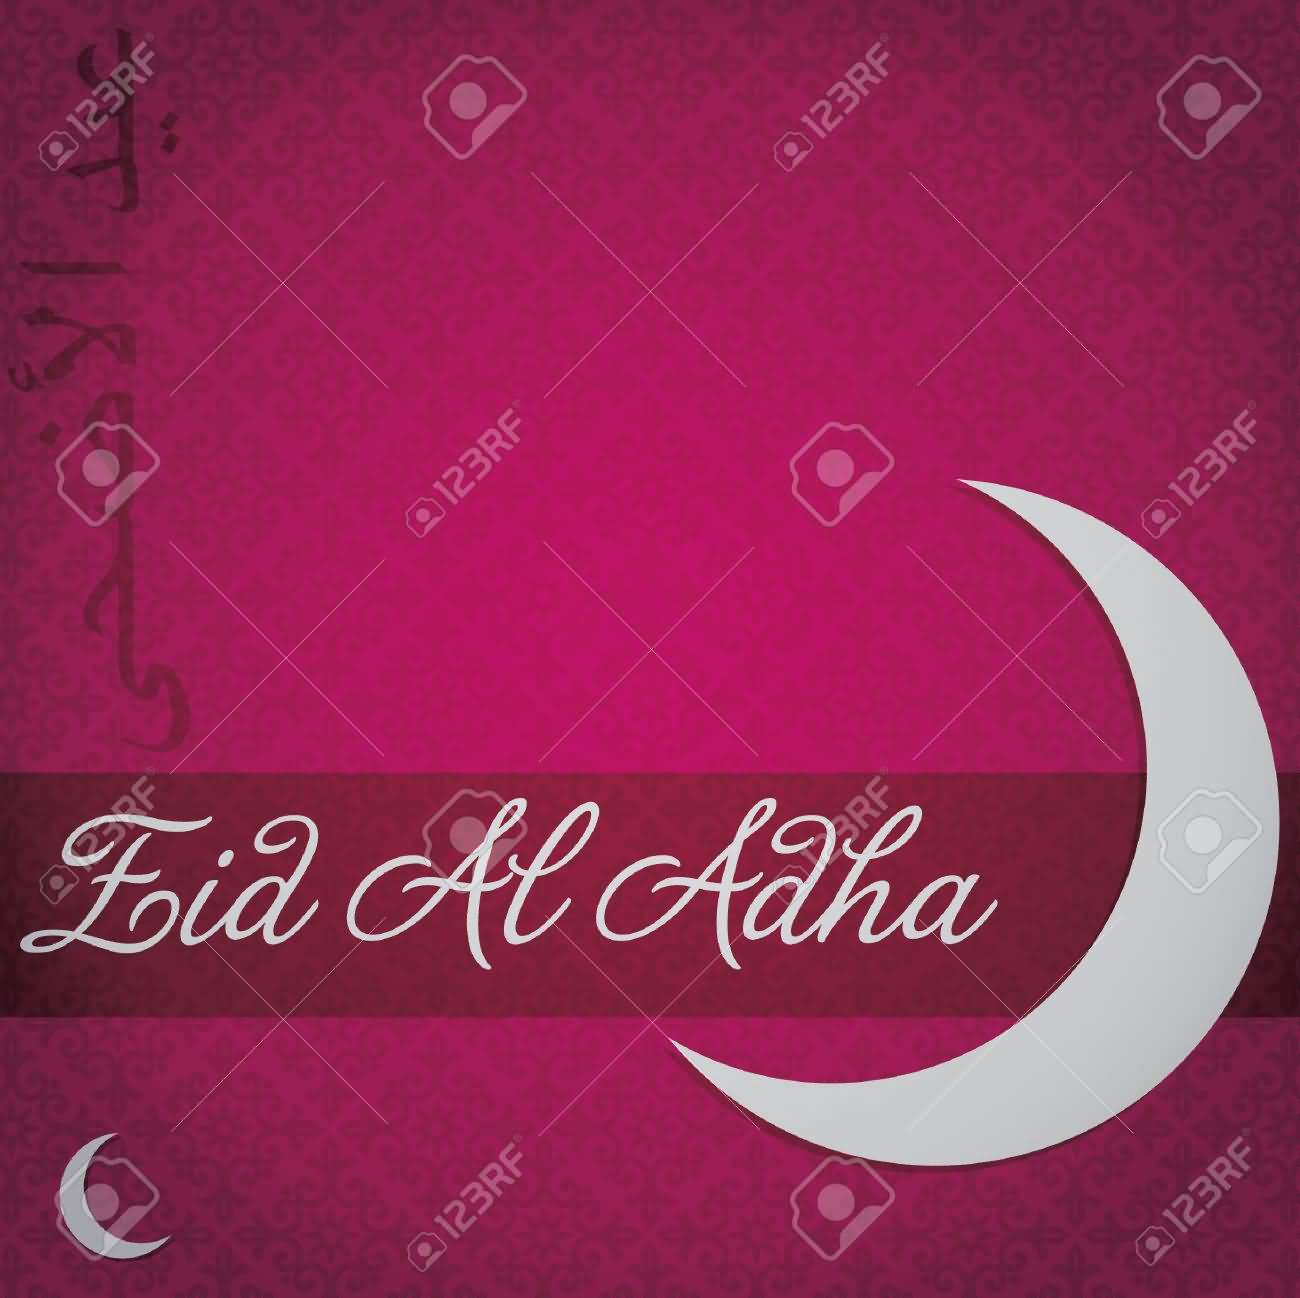 65 best eid ul adha 2016 greeting photos and images eid al adha 2016 greetings kristyandbryce Choice Image